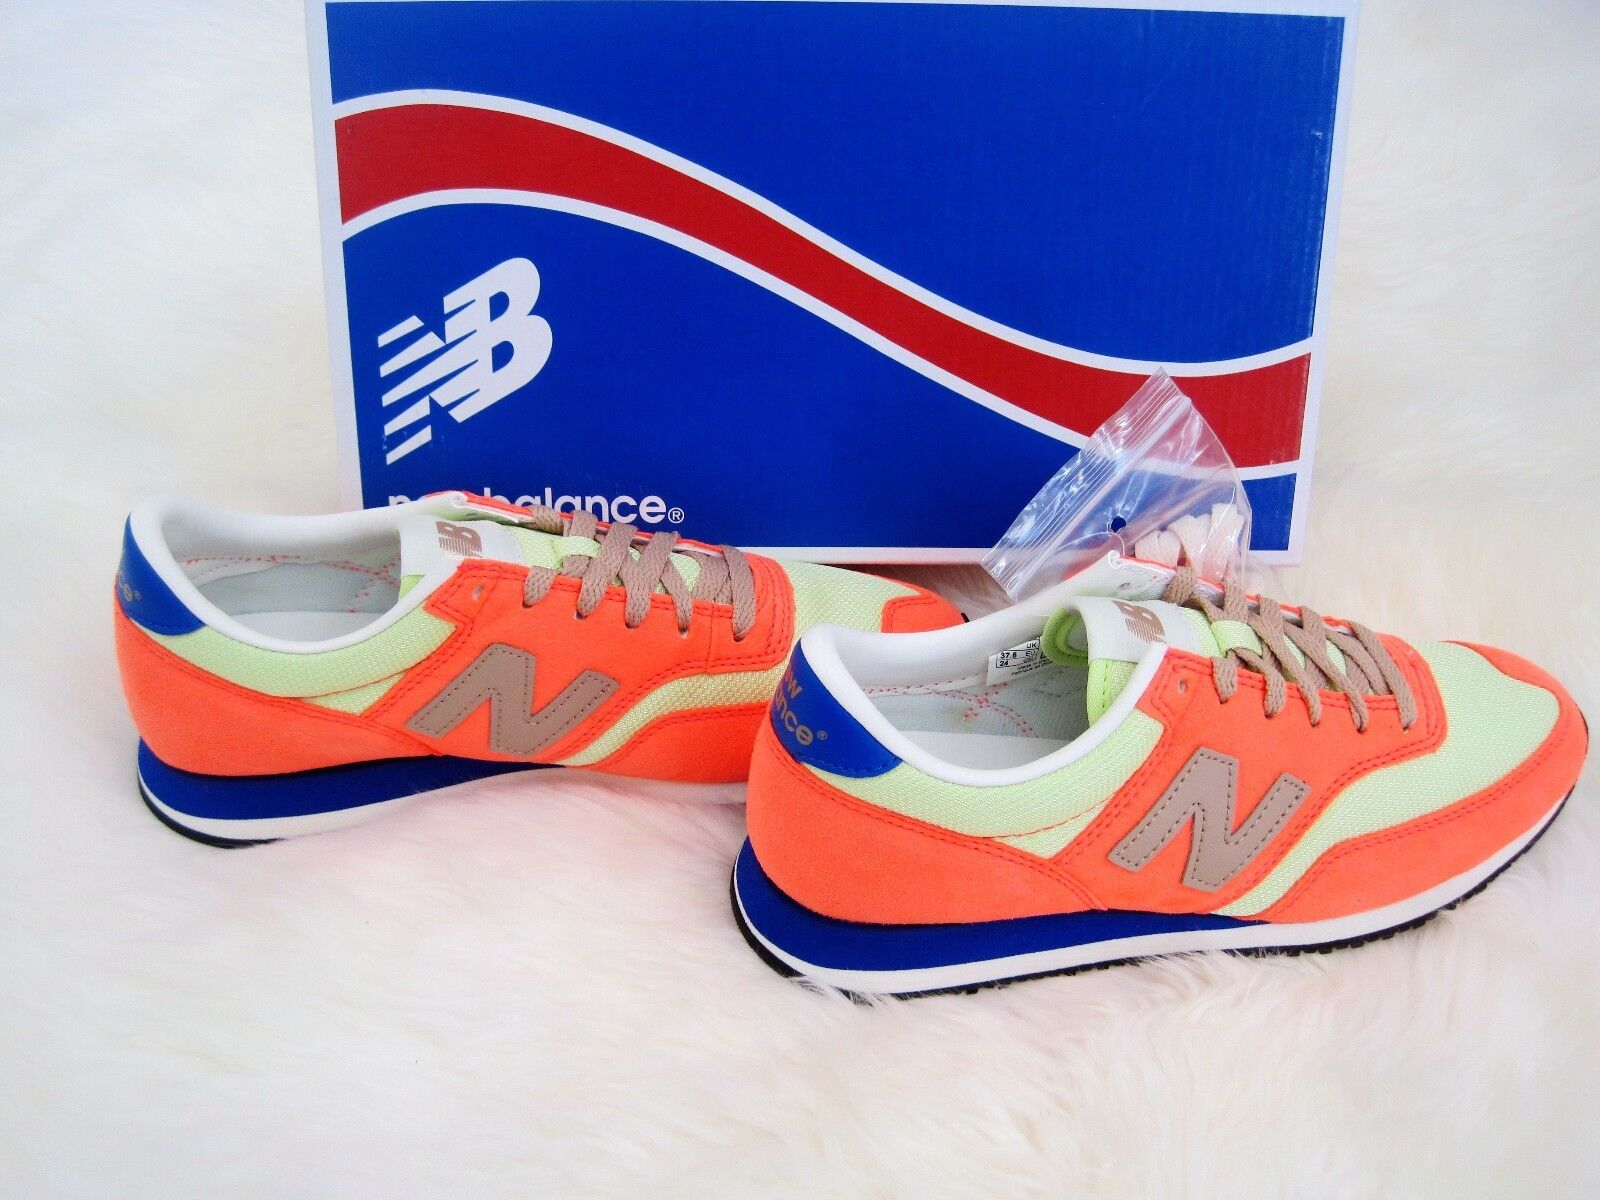 New Balance For J.Crew 620 Sneakers Neon Mango New In Box Women's US Sizes  6-10